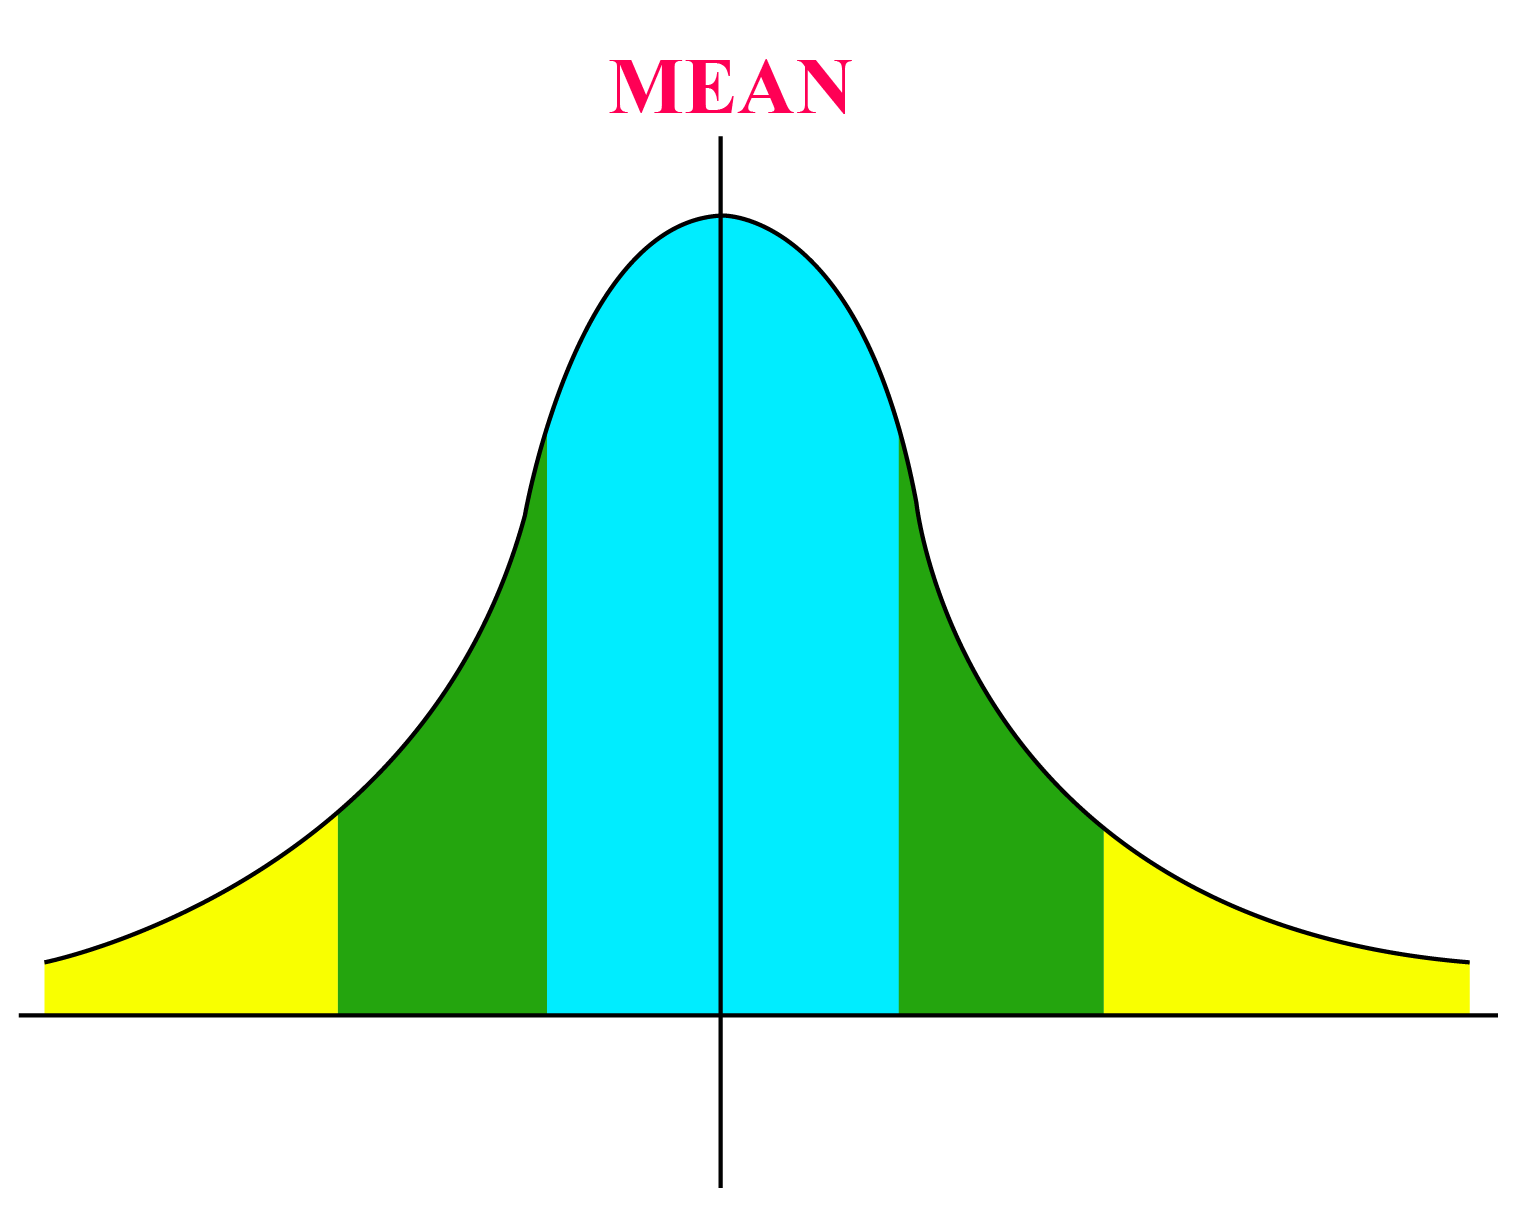 Mean - Bell curve